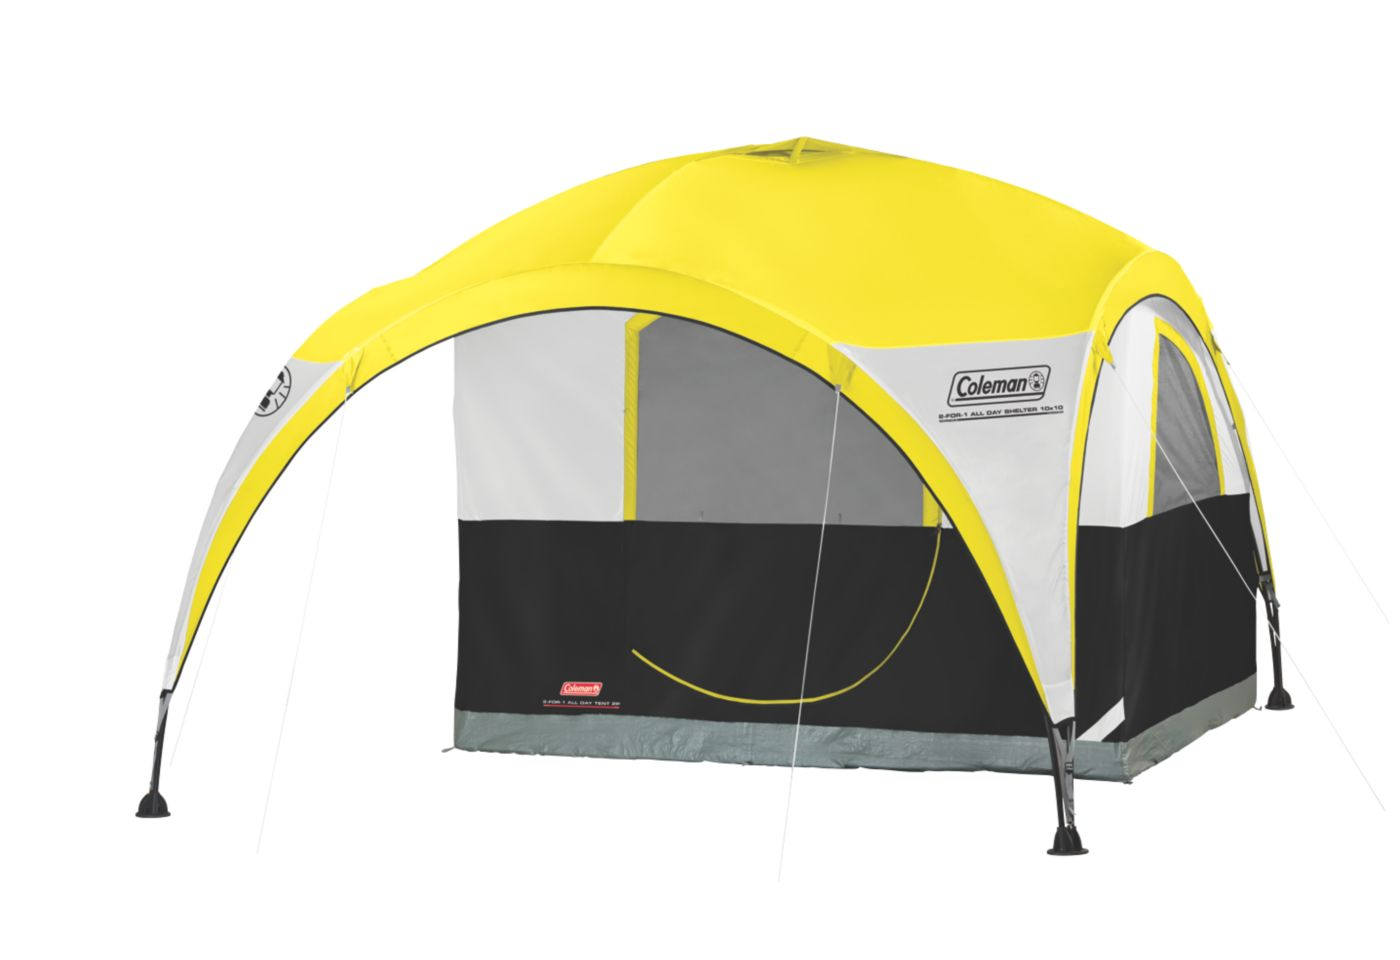 ... Tent · 2-For-1 All Day 2-Person Shelter u0026 ...  sc 1 st  Coleman : coleman 1 minute tent - memphite.com